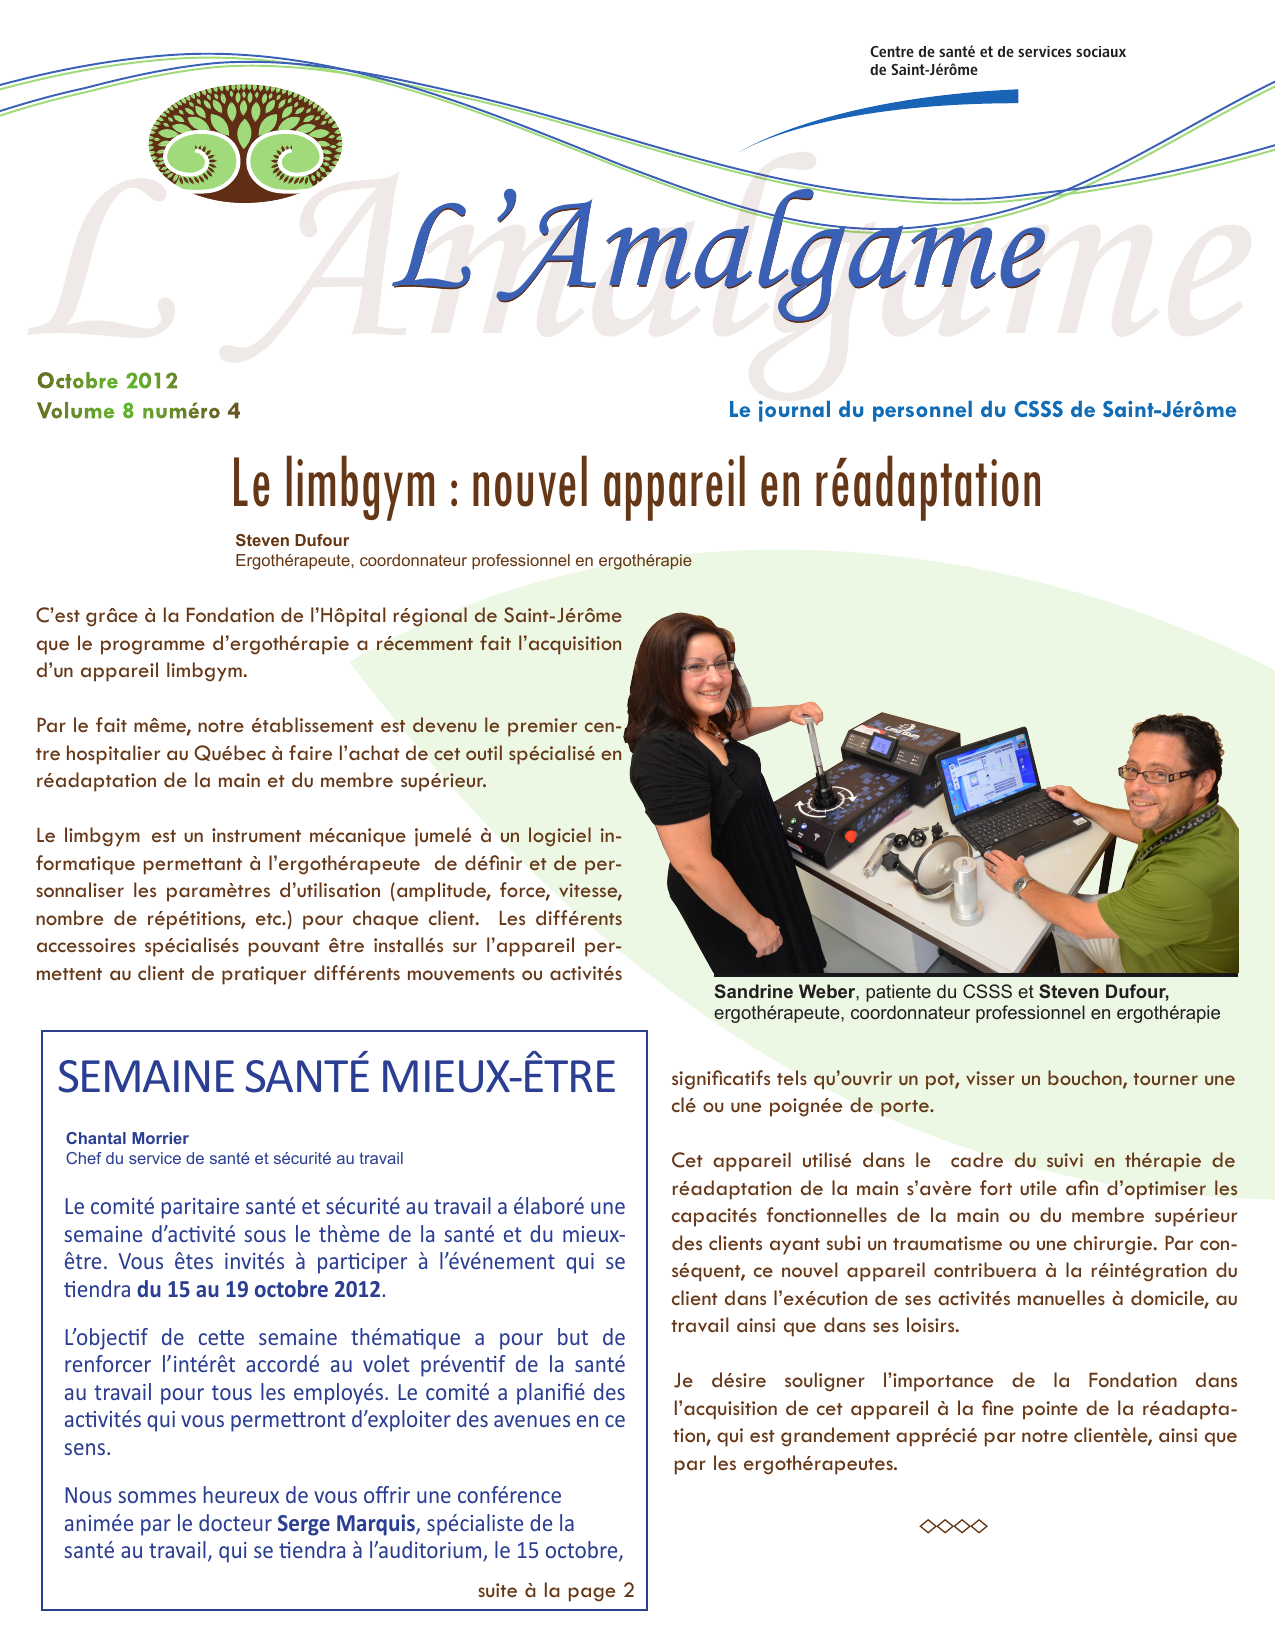 Clsc St Jerome Carte Assurance Maladie.Vol 8 No 4 Edition Octobre 2012 Csss De Saint